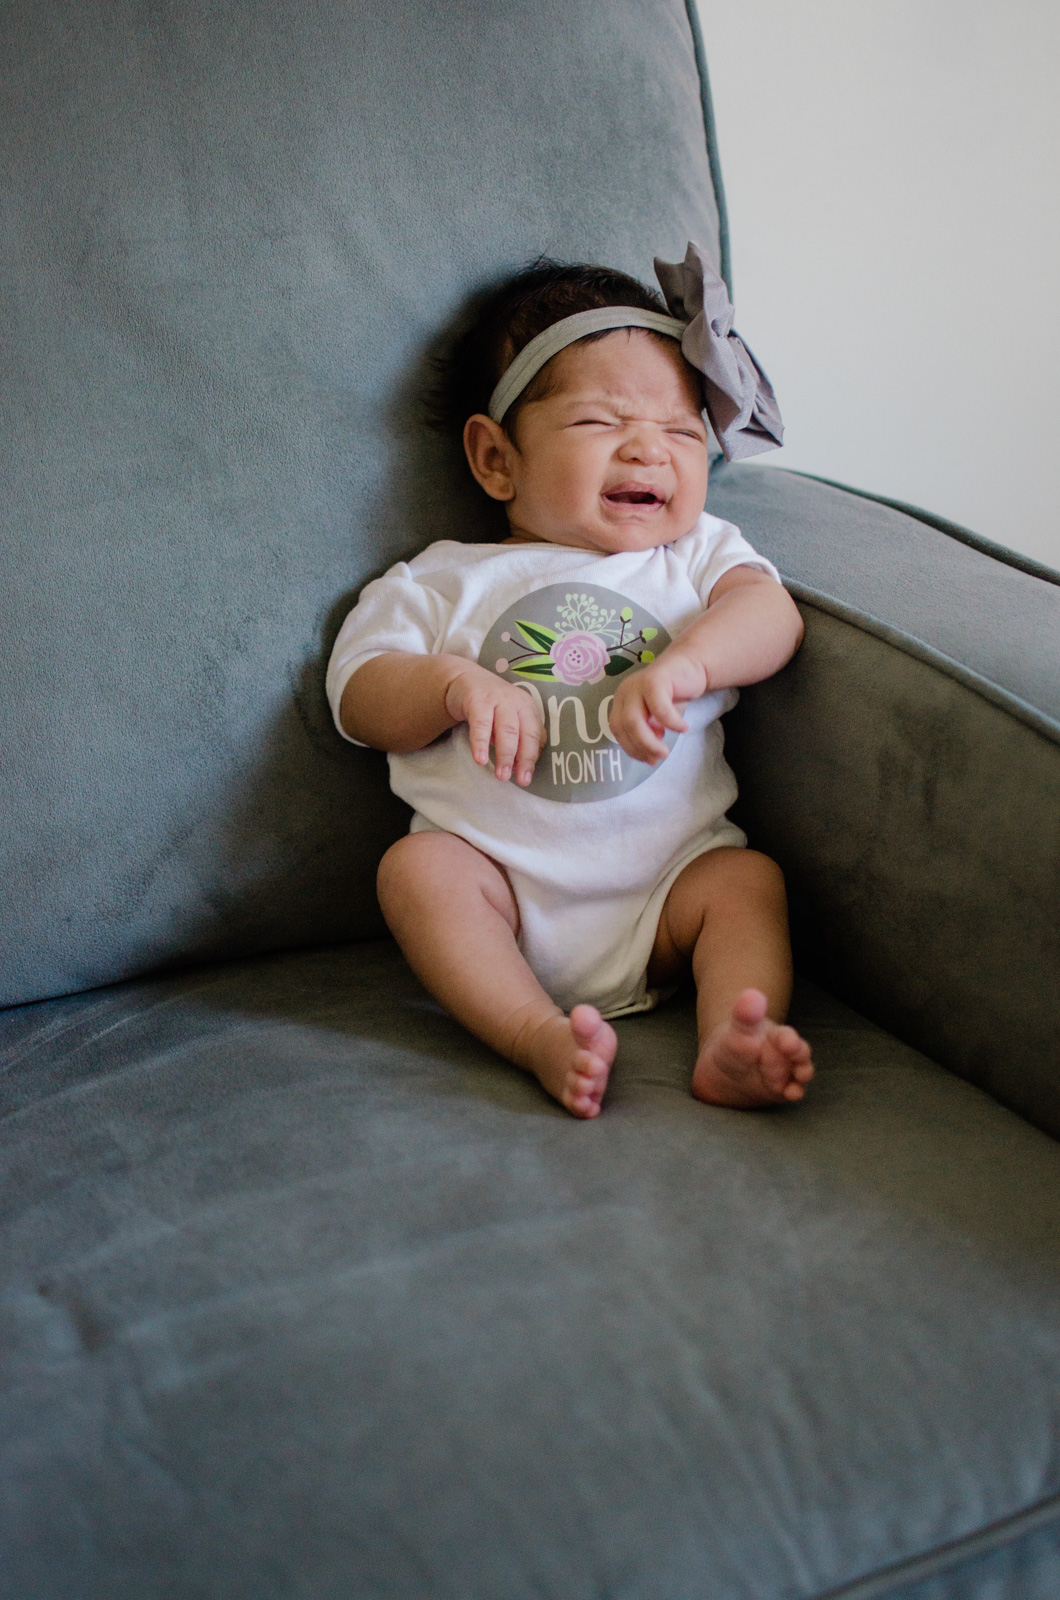 eliana's one month update - All about Ellie at one month old! bylaurenm.com